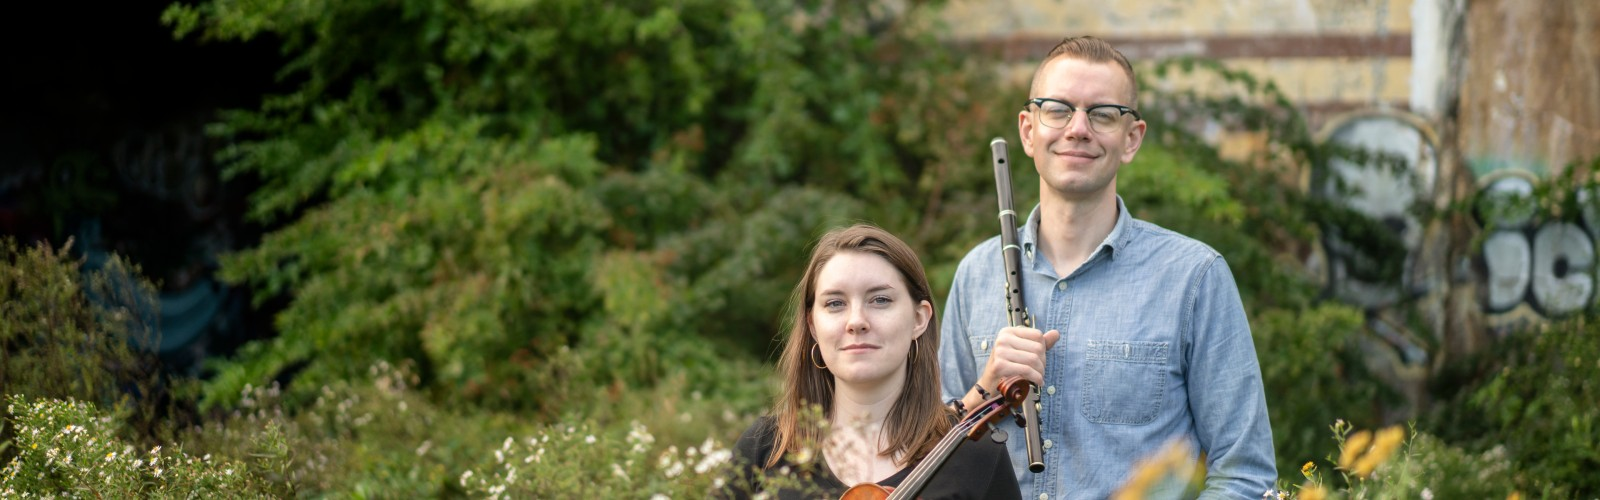 International Uilleann Piping Day 2020 Online Concert Will Woodson and Caitlin Finley